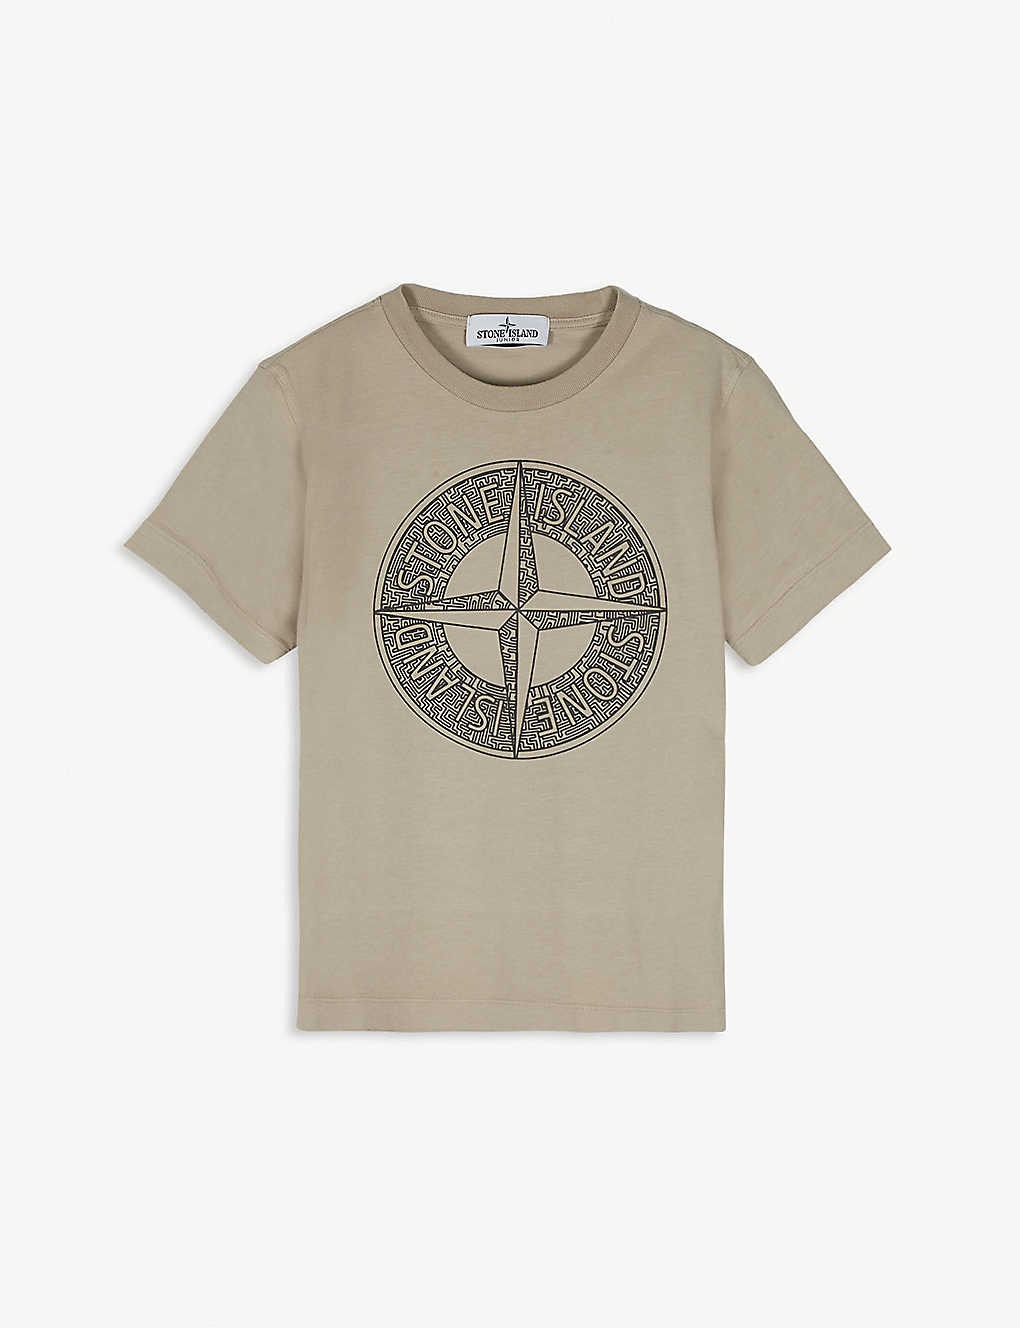 STONE ISLAND: Compass logo cotton T-shirt 4-14 years